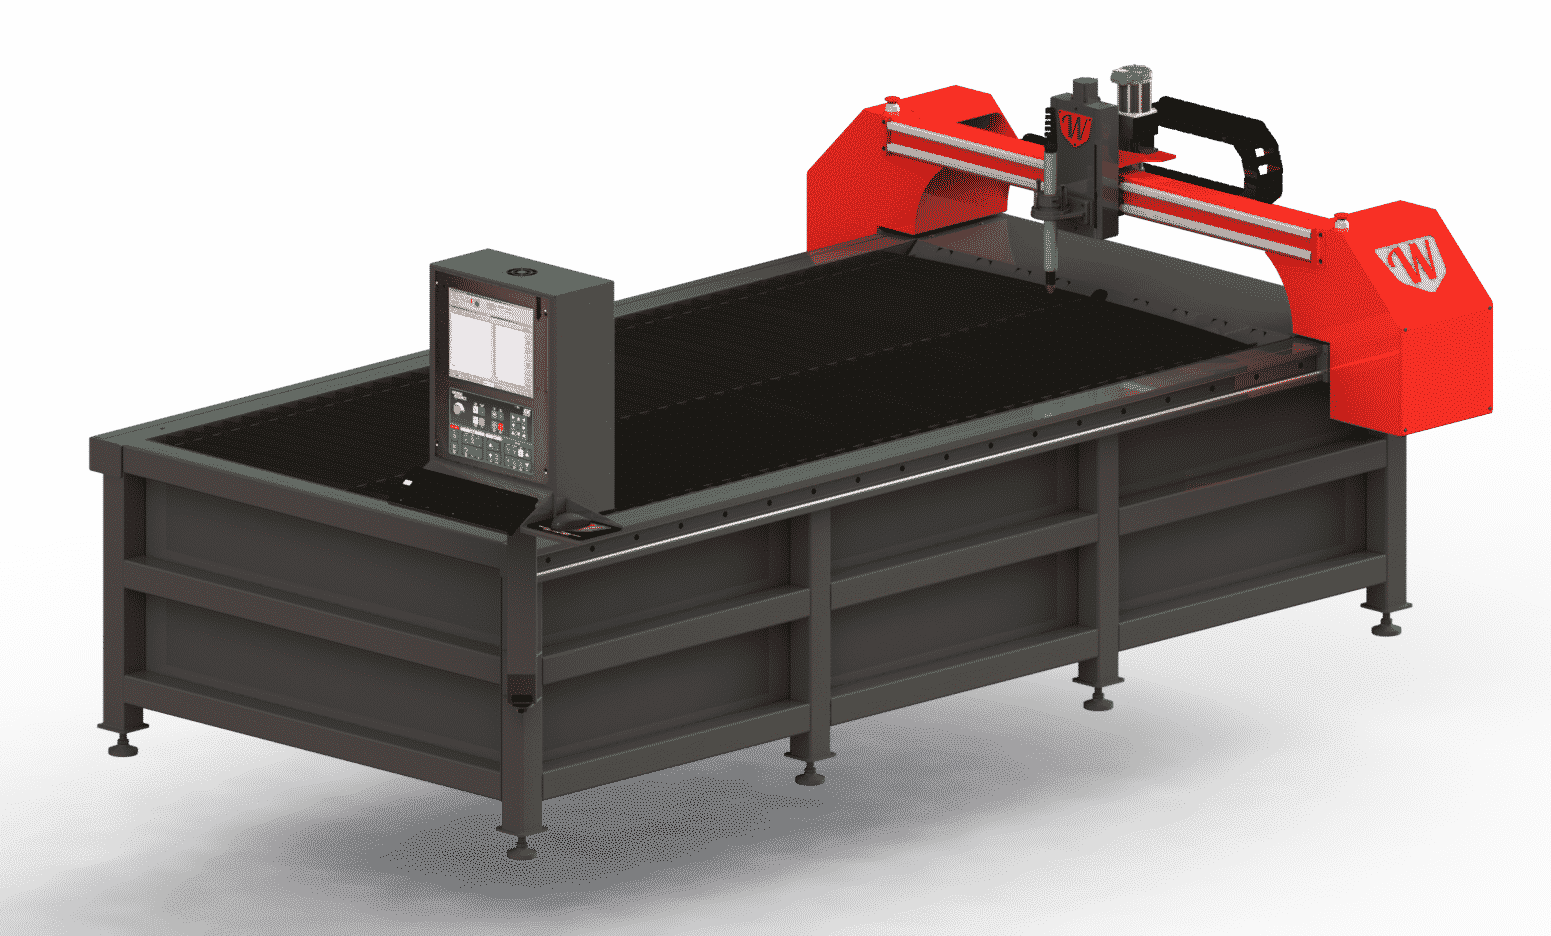 4x8 CNC Plasma Cutting Table with iCNC Controller by Westcott Plasma